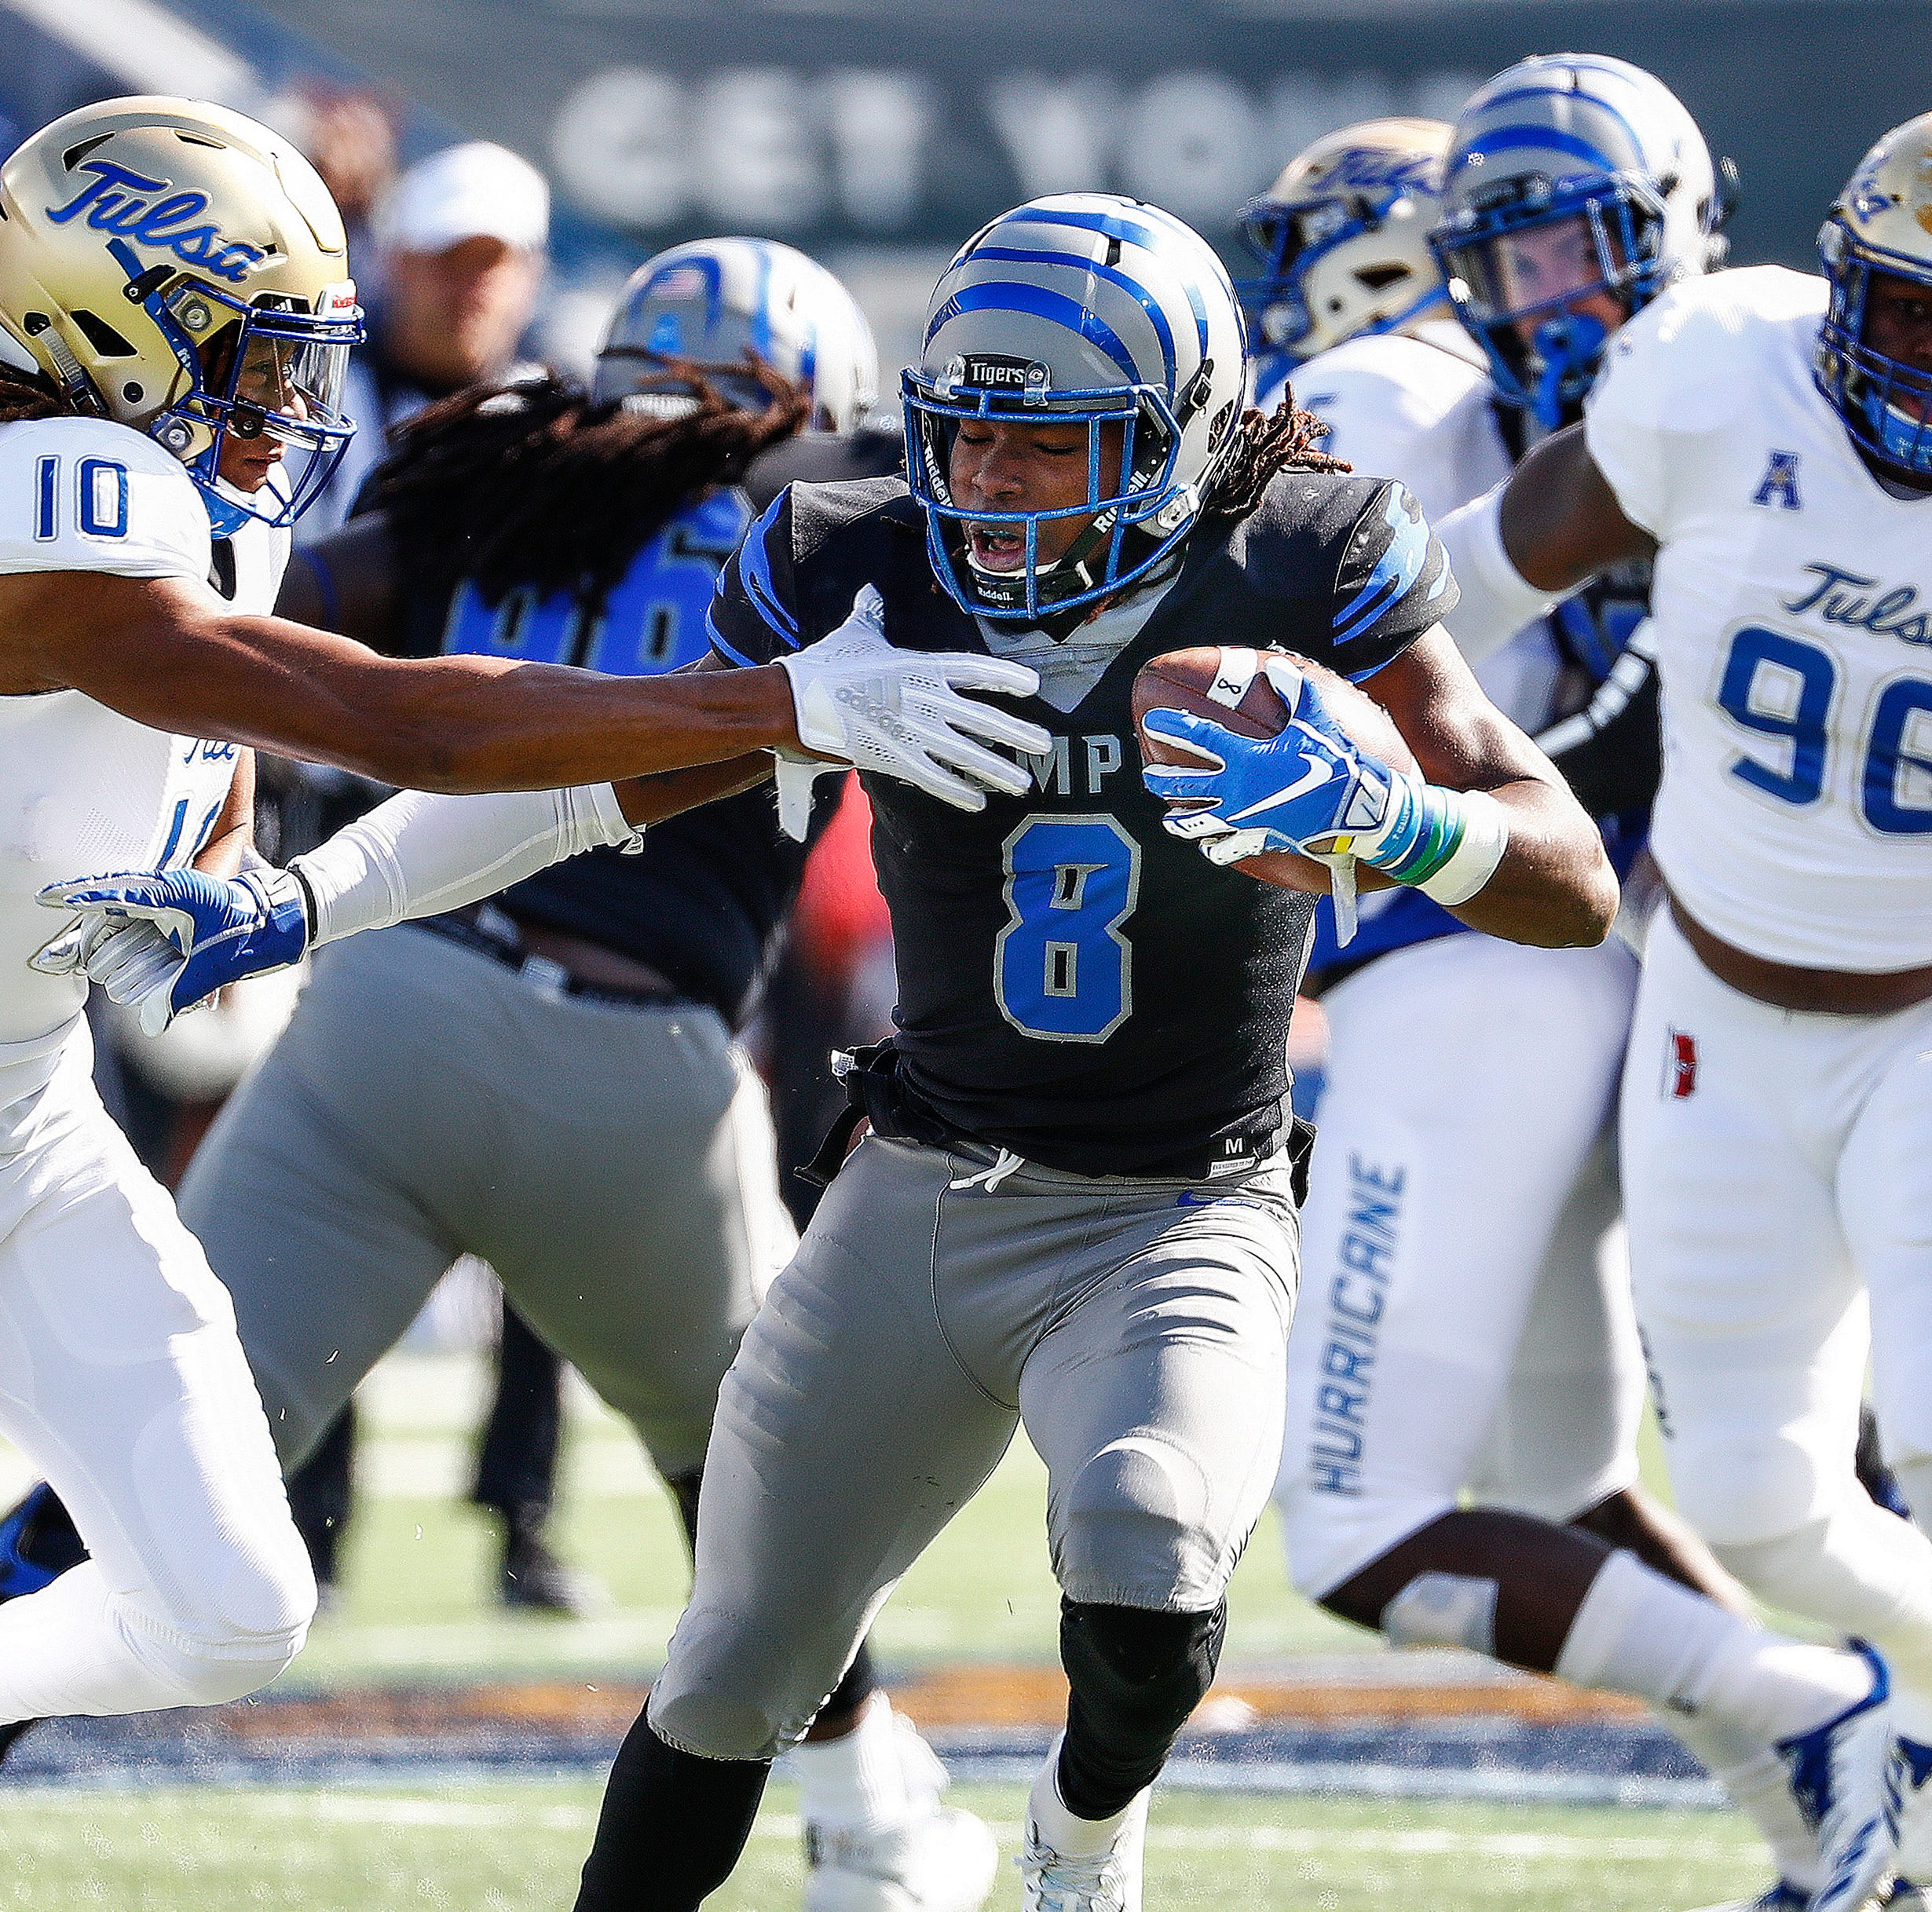 Memphis football: Darrell Henderson finishes 10th in Heisman Trophy voting